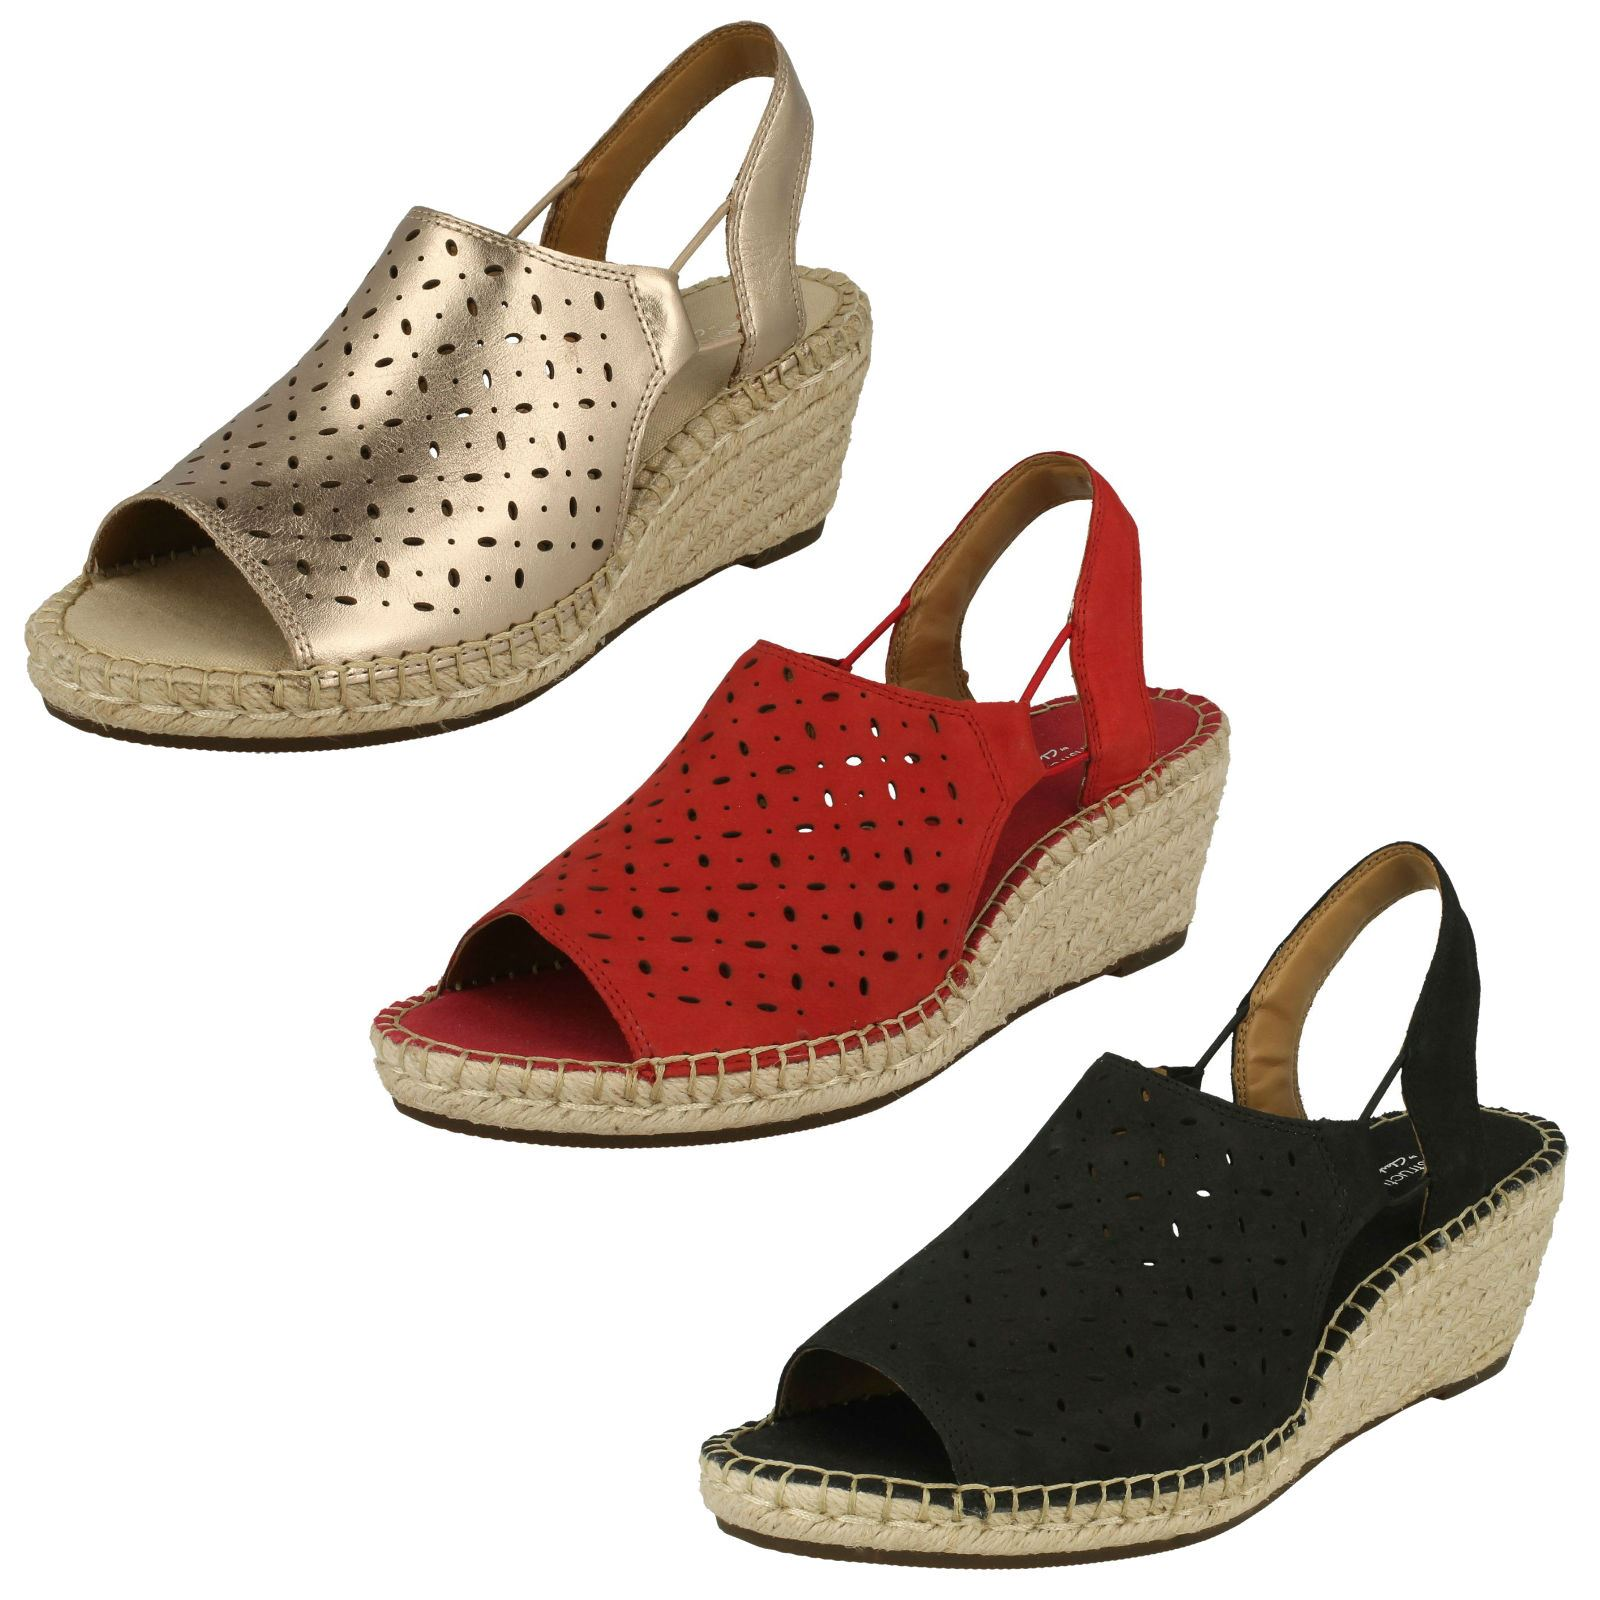 f8c4fc37fb45 Details about Ladies Clarks Leather Nubuck Slingback Wedge Heel Sandals - Petrina  Gail